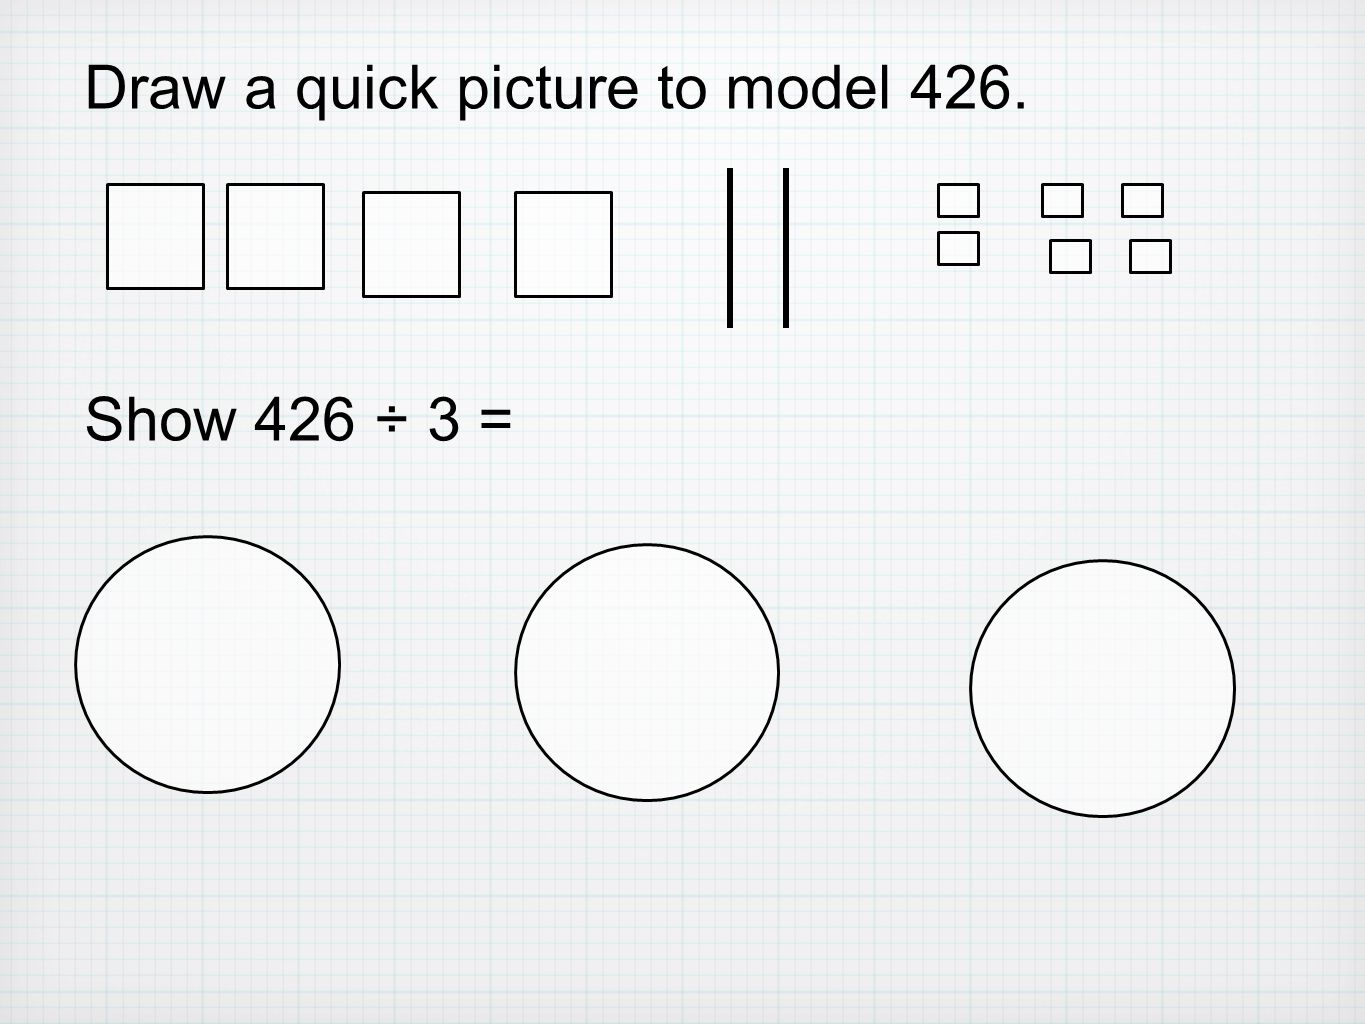 worksheet Dividing Fractions By Whole Numbers Worksheet dividing fractions by whole numbers worksheet pattern worksheets angles and triangles draw a quick picture to model 426